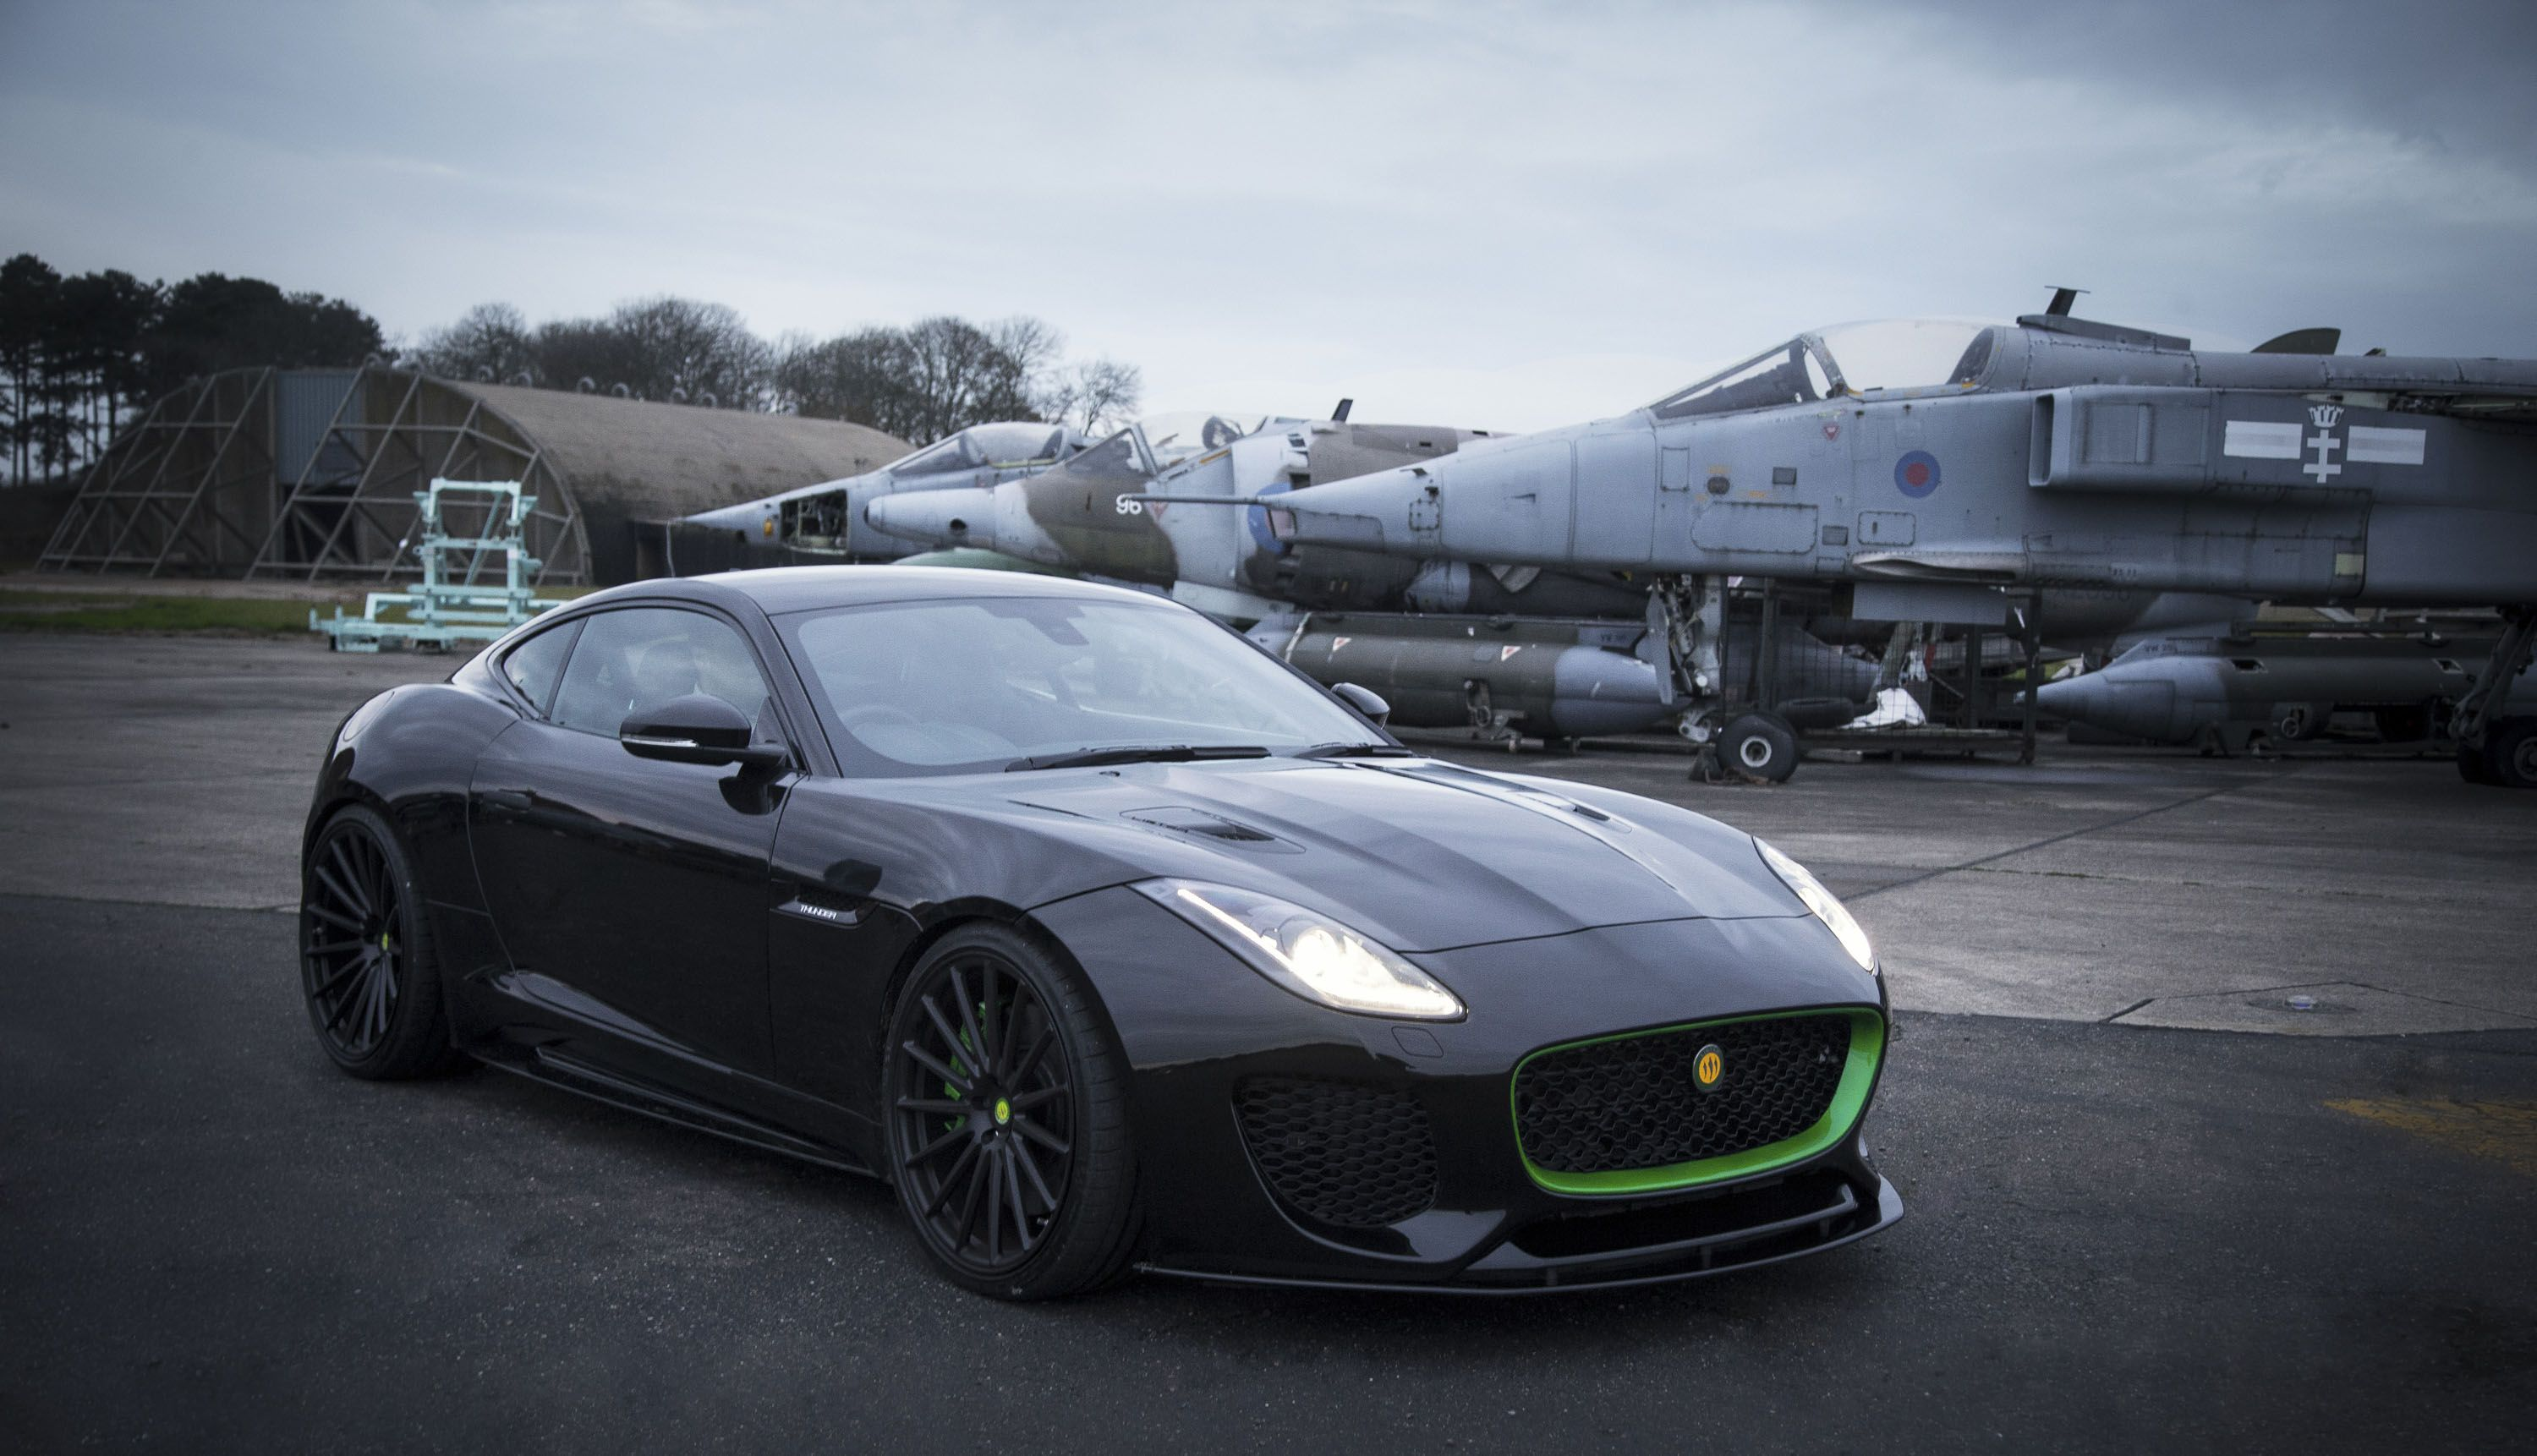 The Lister Thunder Gets A Name Makeover You Can Now Start Calling